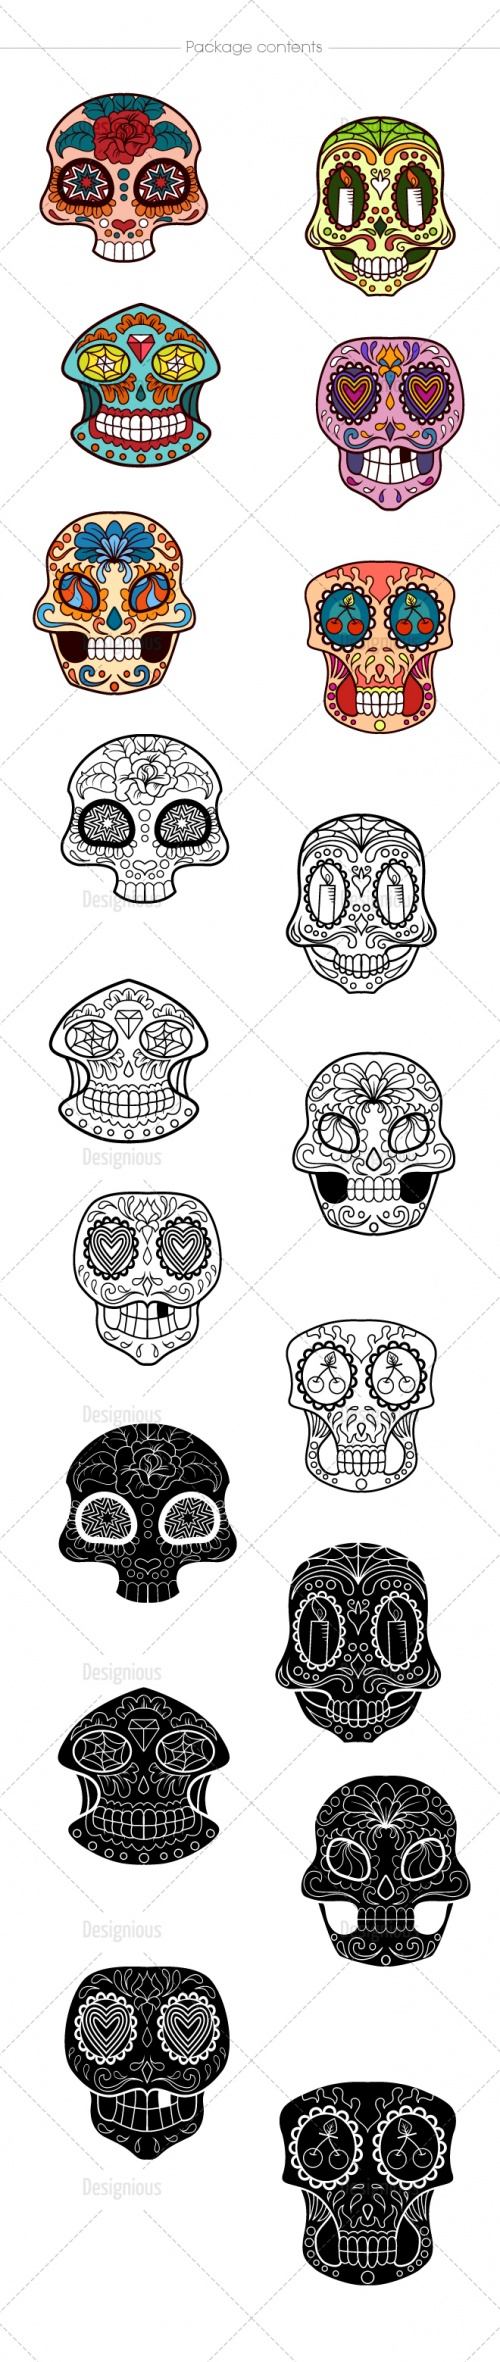 Sugar Skulls Vector Pack 40